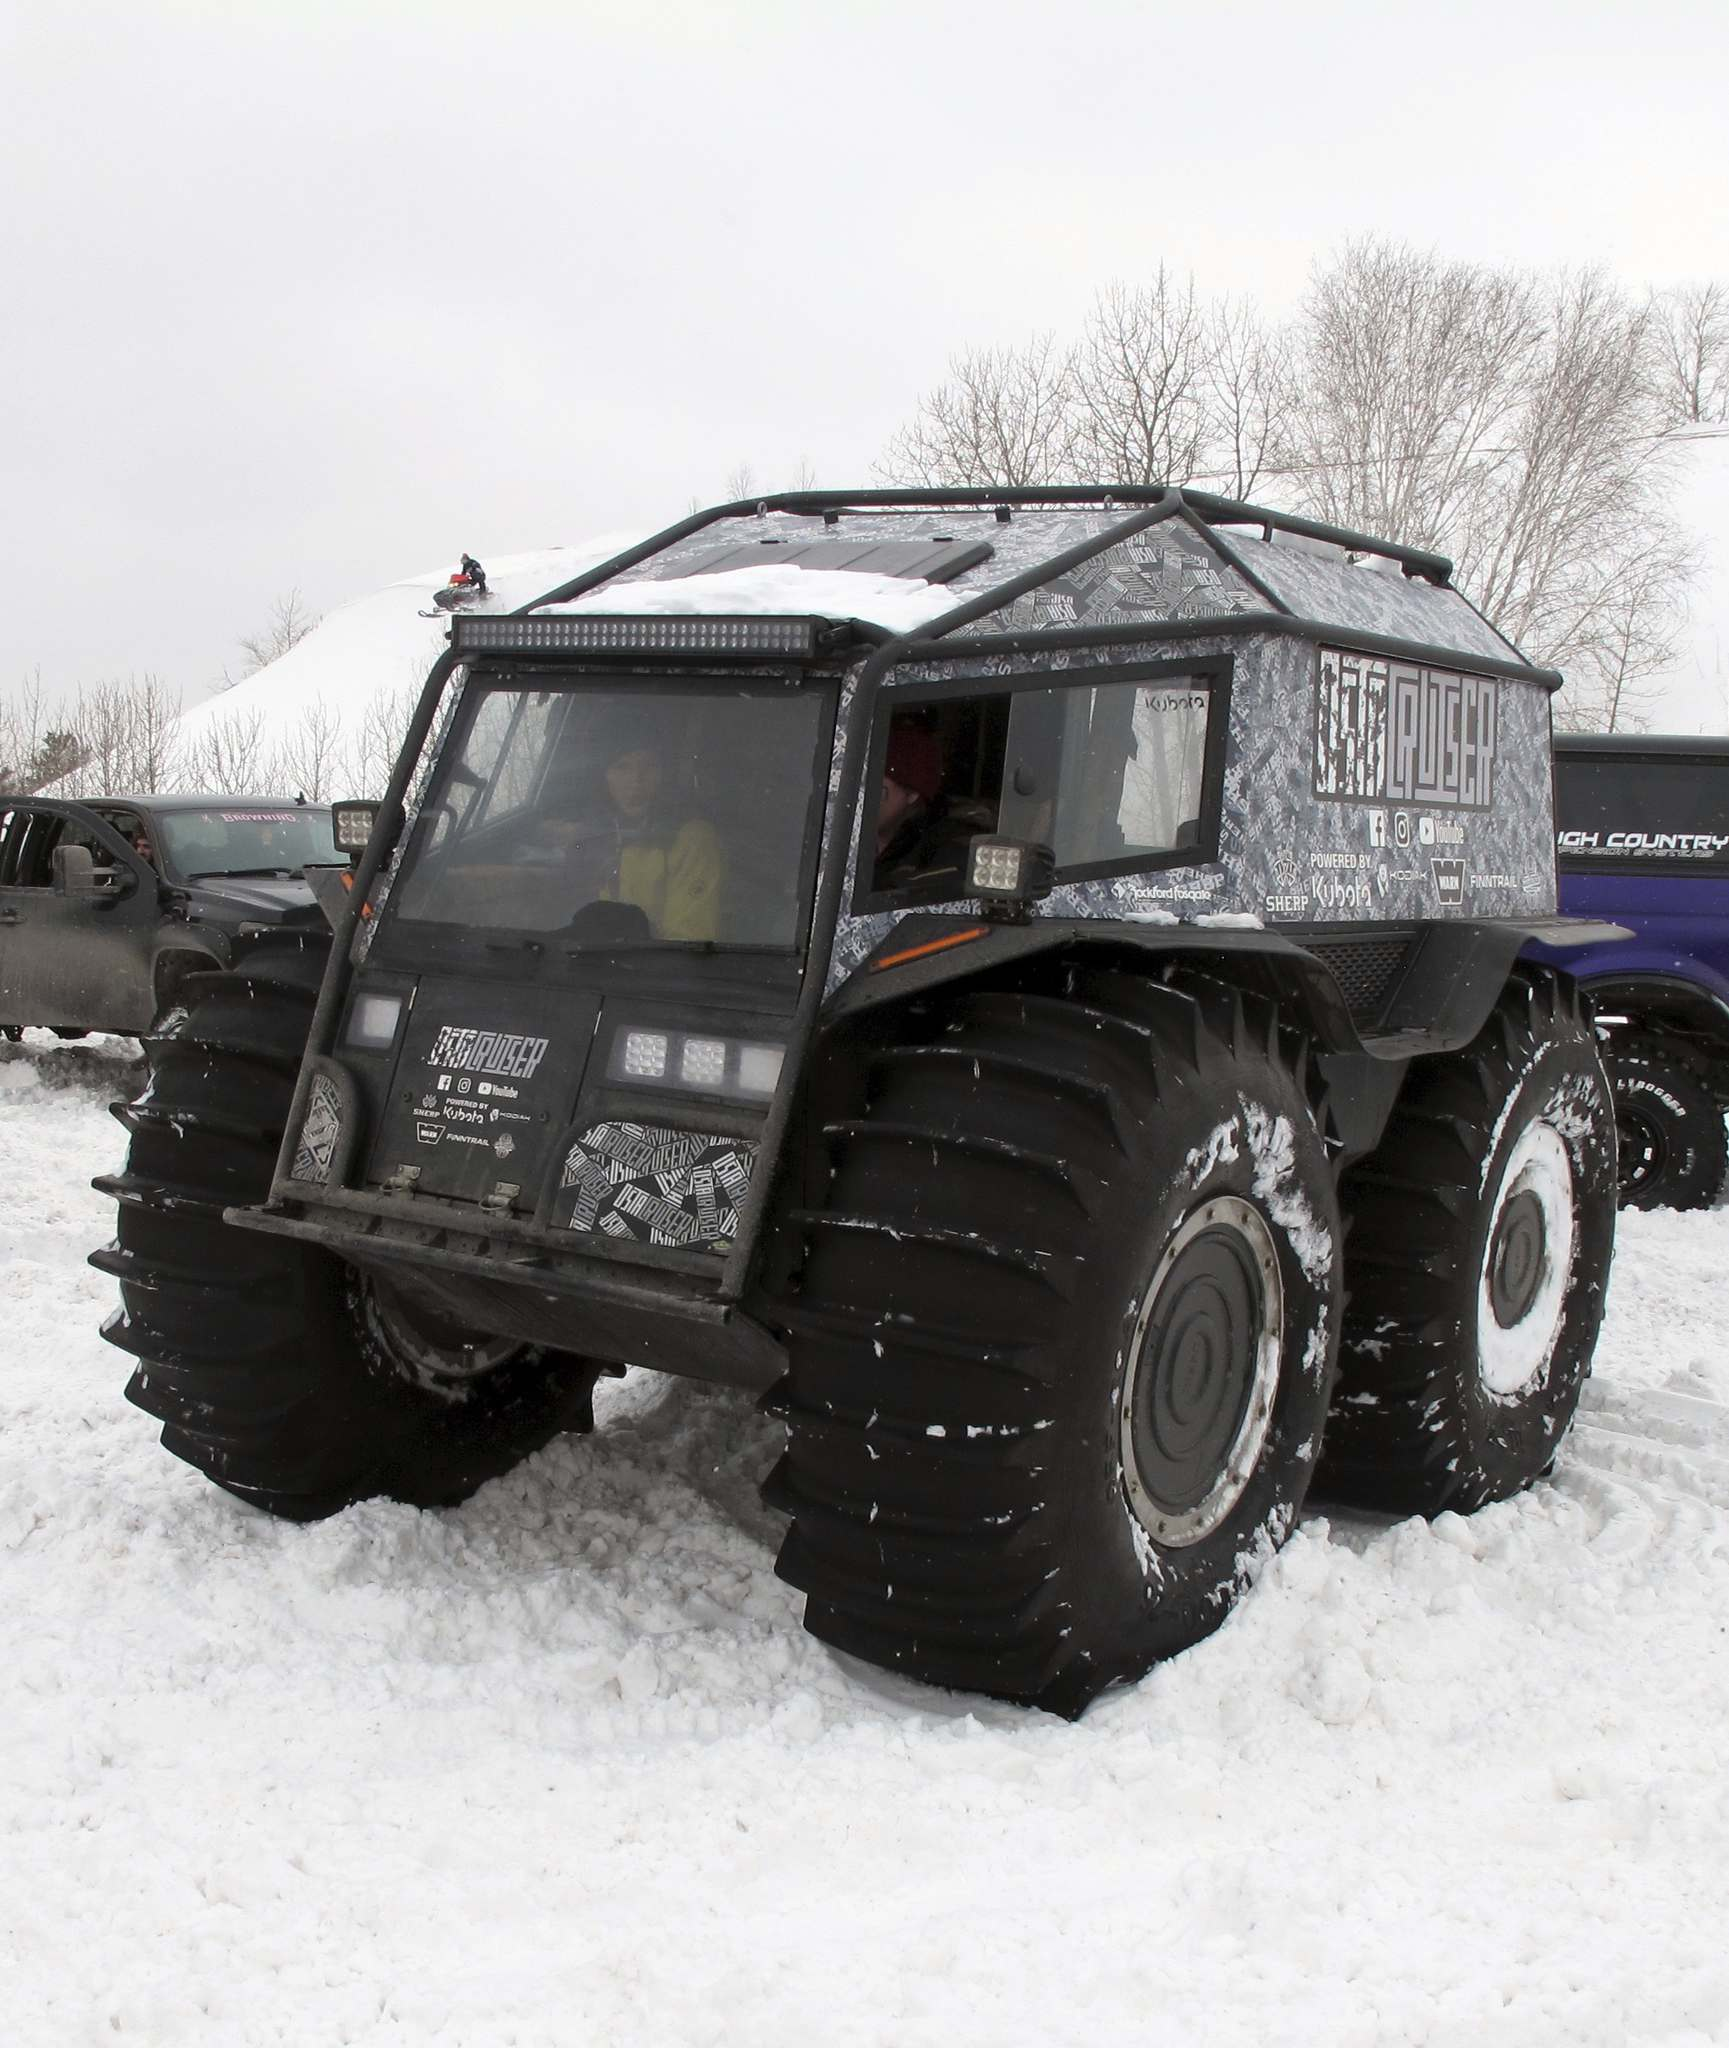 Willy Williamson / Winnipeg Free PressFor this year's Manitoba Winter Mega Run, the Ostacruiser team brought out their Sherp, an off-road beast built in Russia and bought in Manitoba.